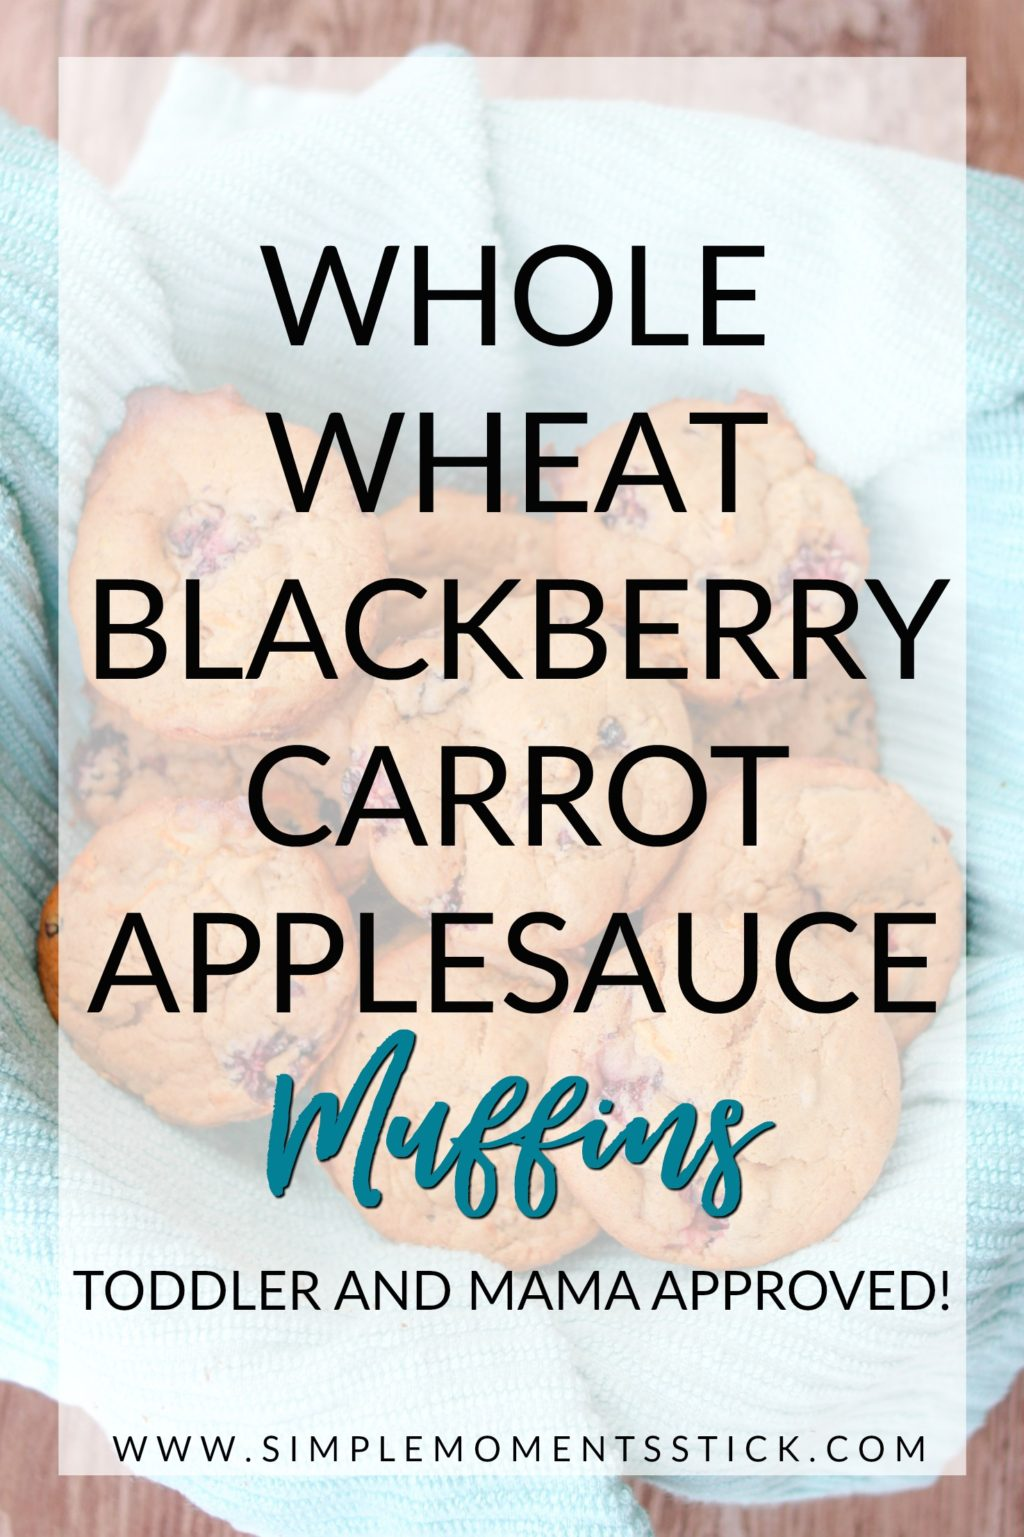 Whole wheat blackberry carrot applesauce muffins piled in a bowl lined with a teal kitchen towel with text overlay - Whole Wheat Blackberry Carrot Applesauce Muffins (Toddler and Mama Approved!)